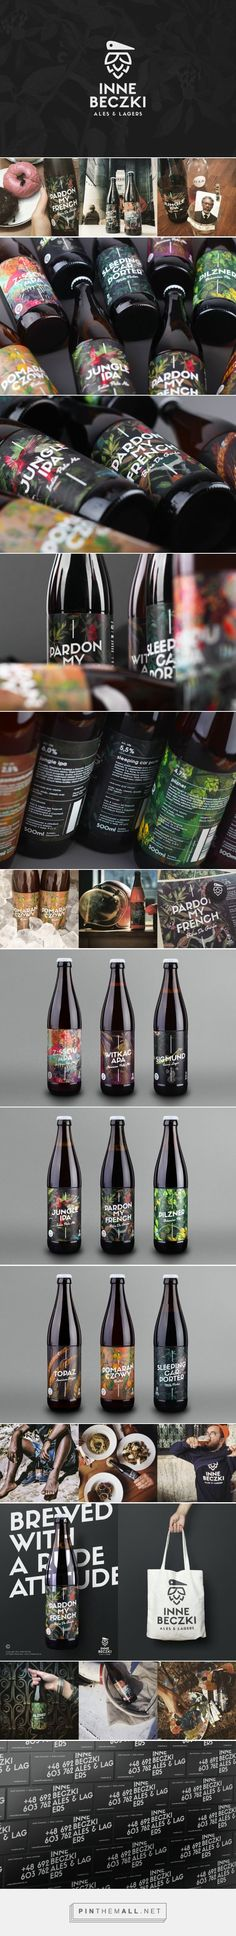 Inne Beczki beer labels designed by Redkroft (Poland)